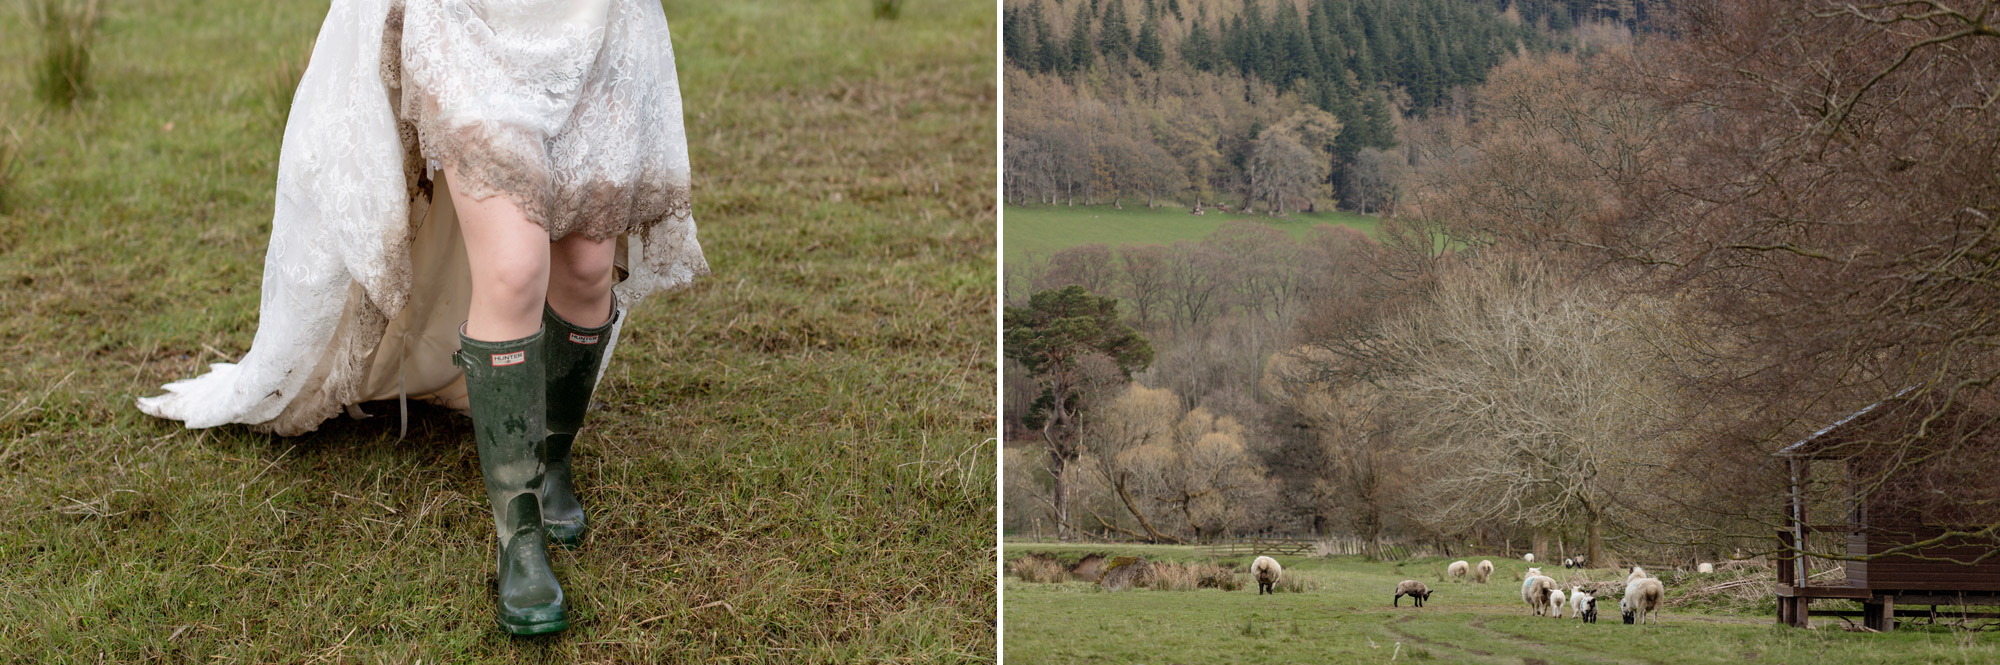 wedding dress full of dirt and hunter welly boots